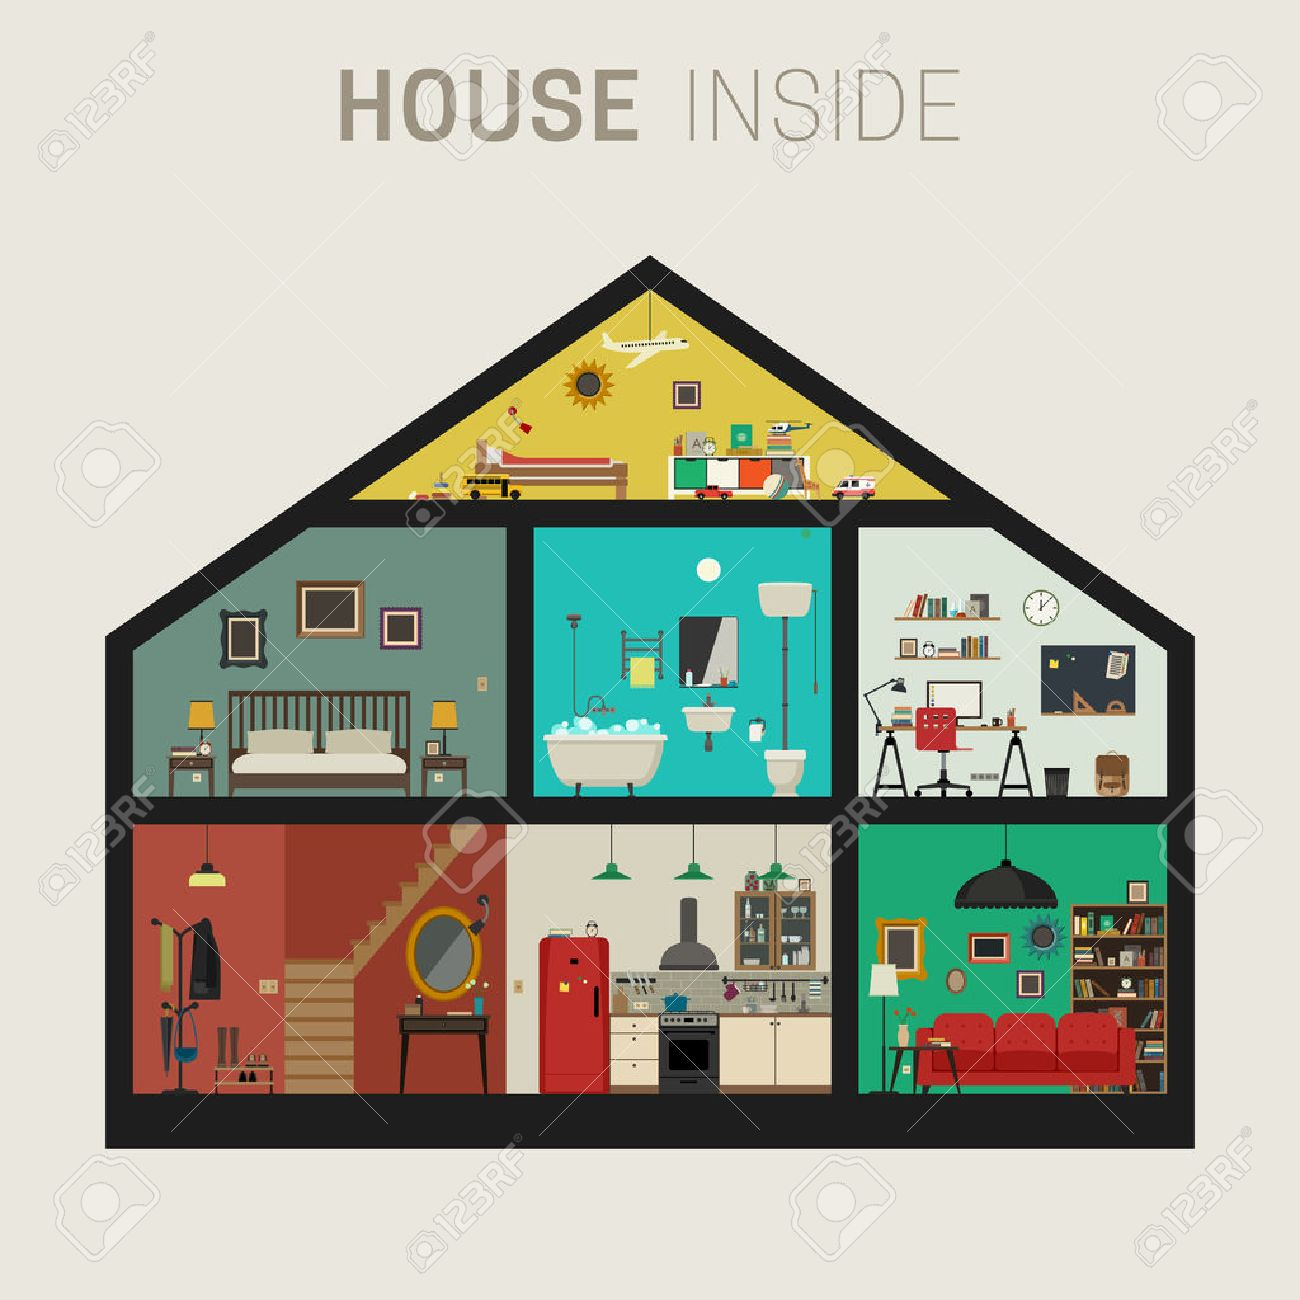 178 345 Furniture Stock Vector Illustration And Royalty Free  # Muebles House And Home